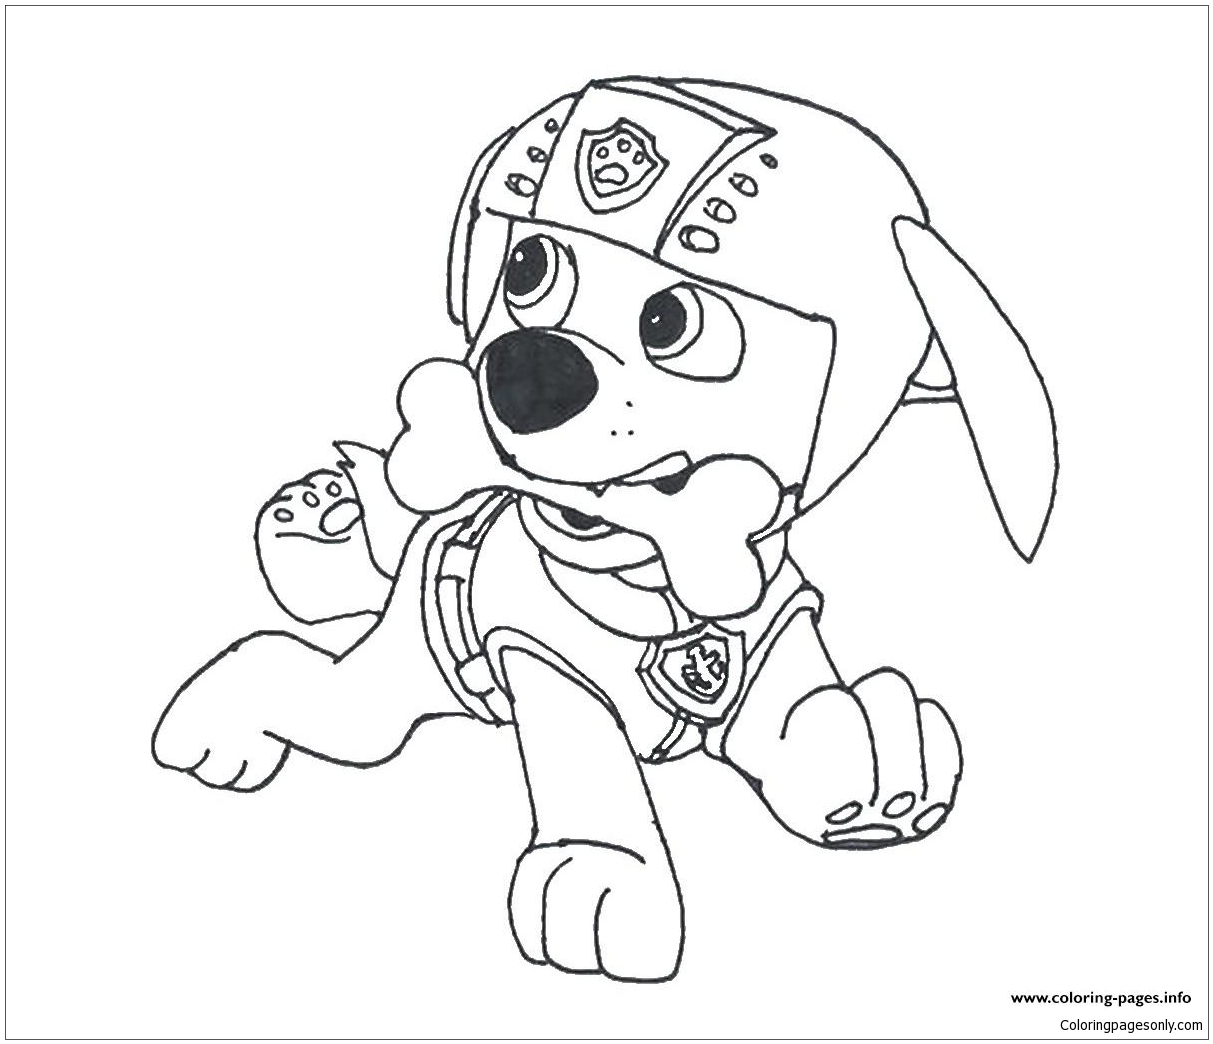 - Paw Patrol Zuma With A Bone Coloring Page - Free Coloring Pages Online